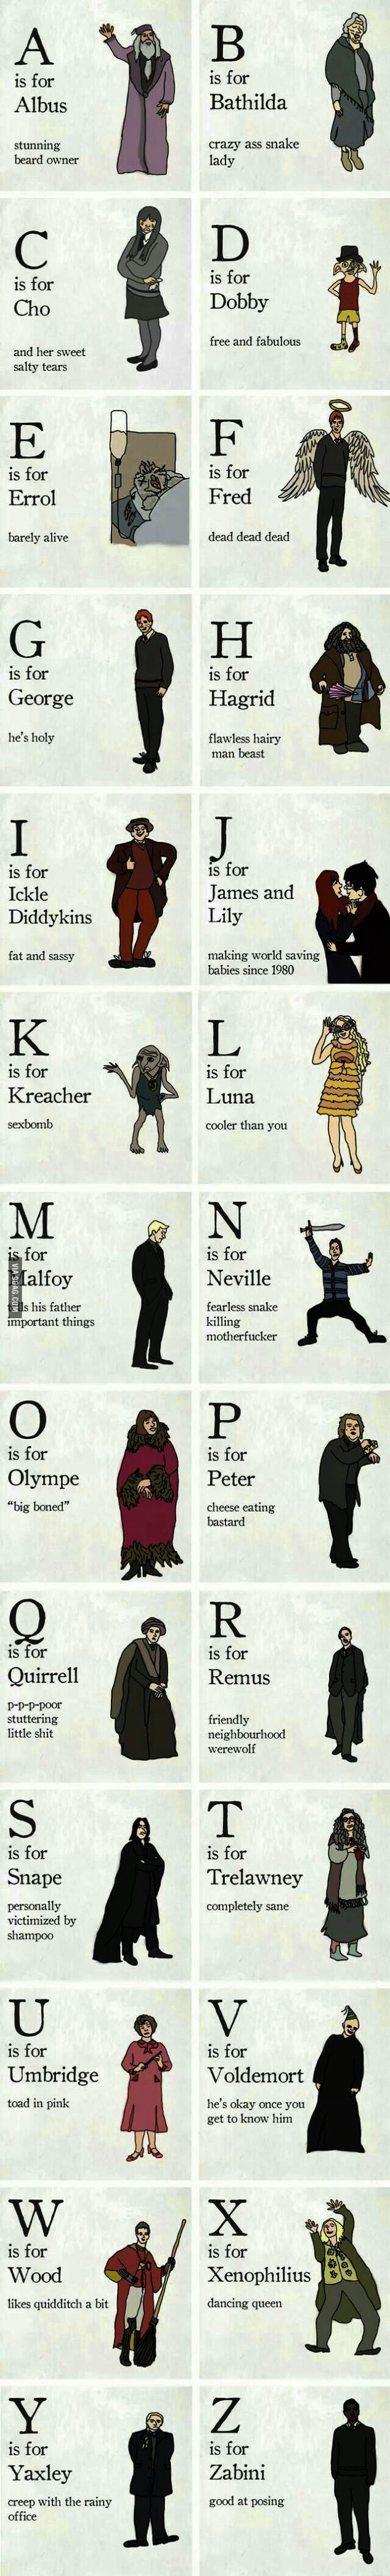 Harry Potter Quiz Name 50 Characters Since Harry Potter Vans Leak And Harry Potter And Th Harry Potter Alphabet Harry Potter Jokes Harry Potter Memes Hilarious